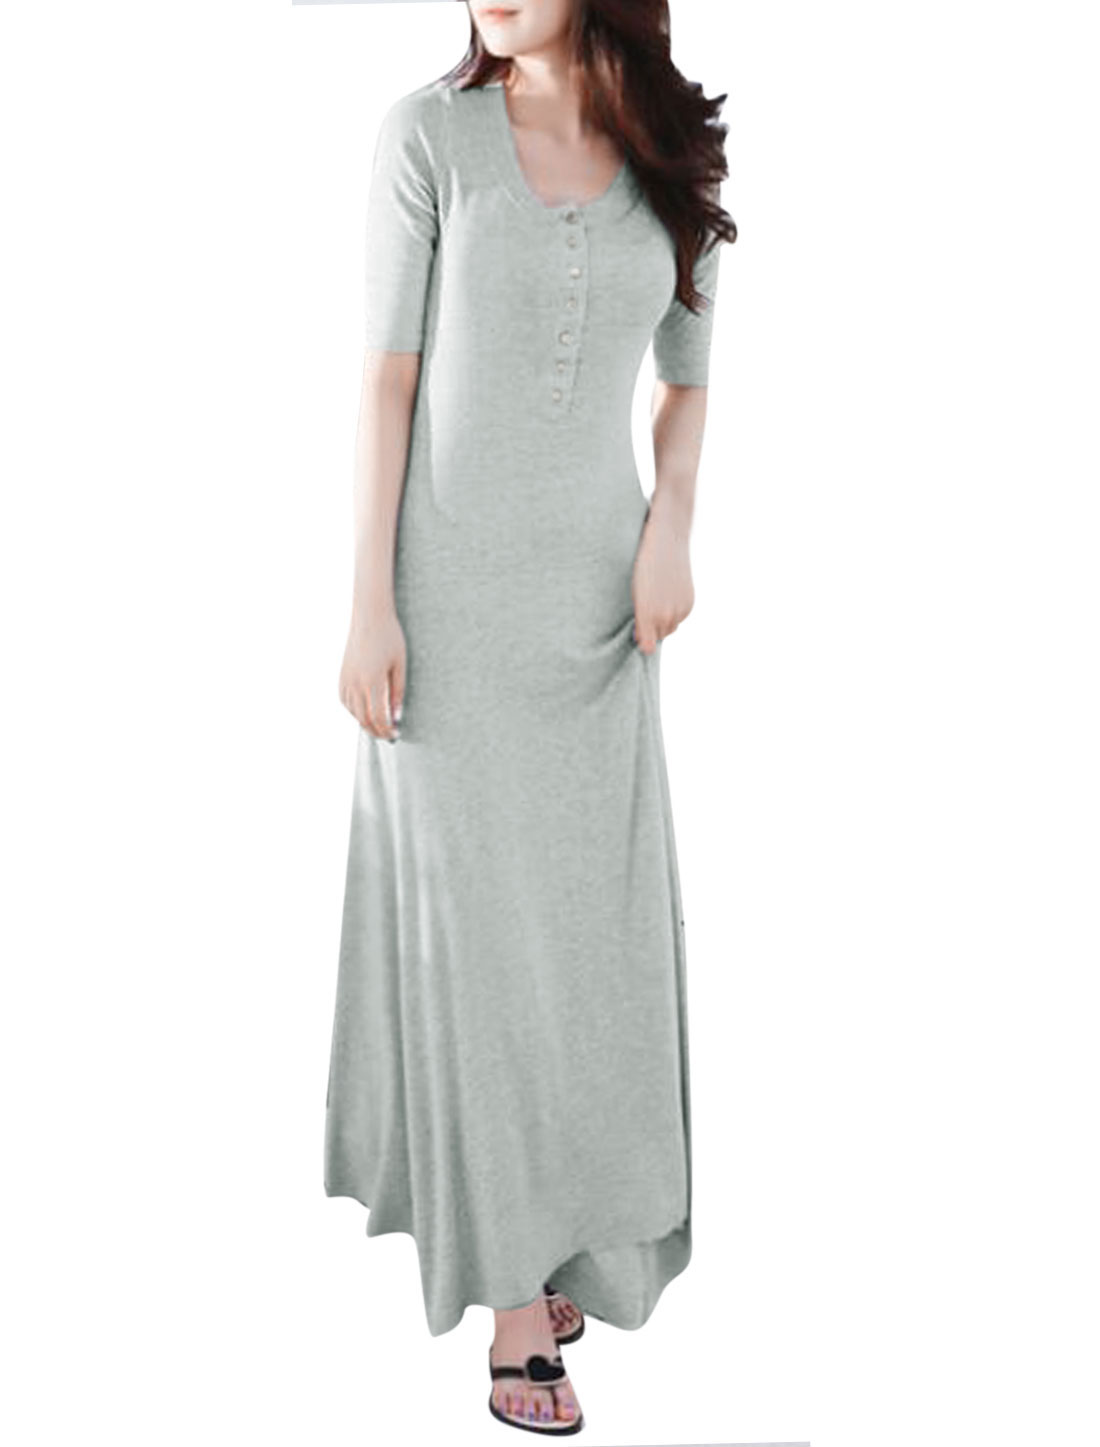 Ladies Elbow Sleeve Scoop Neck Unlined Casual Maxi Dress Light Gray M